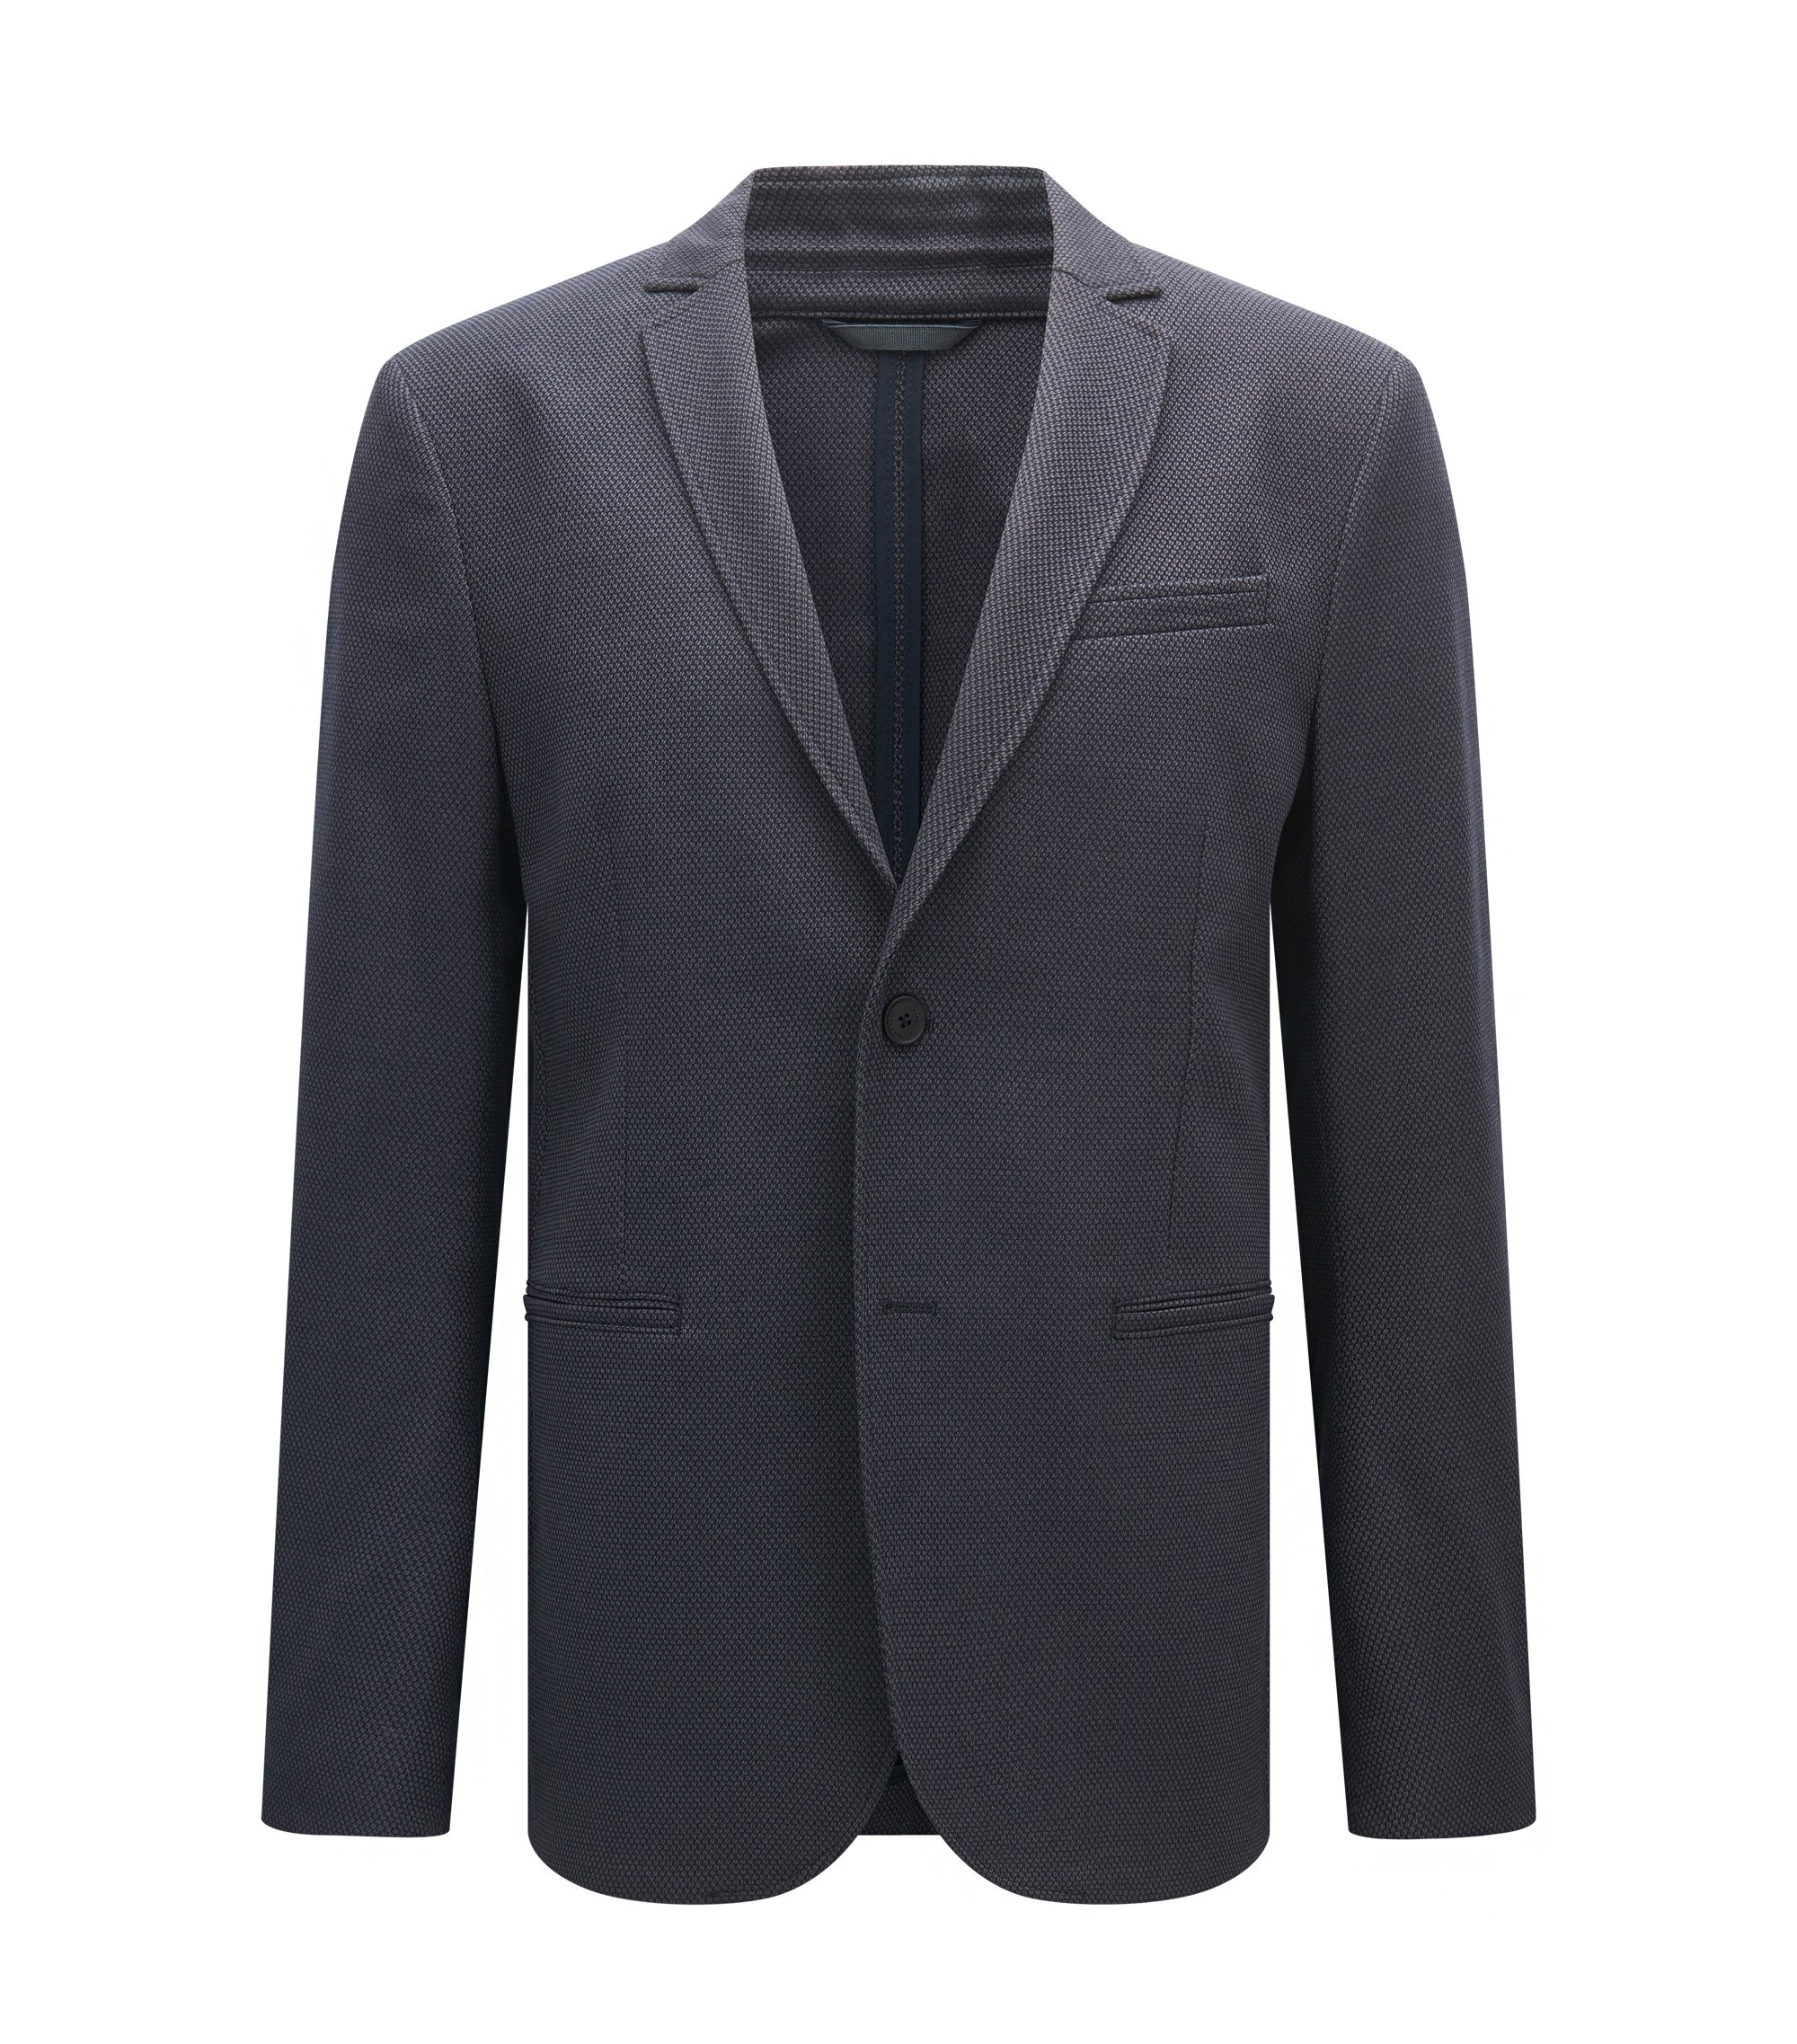 Veste Regular Fit en jacquard stretch, Bleu foncé